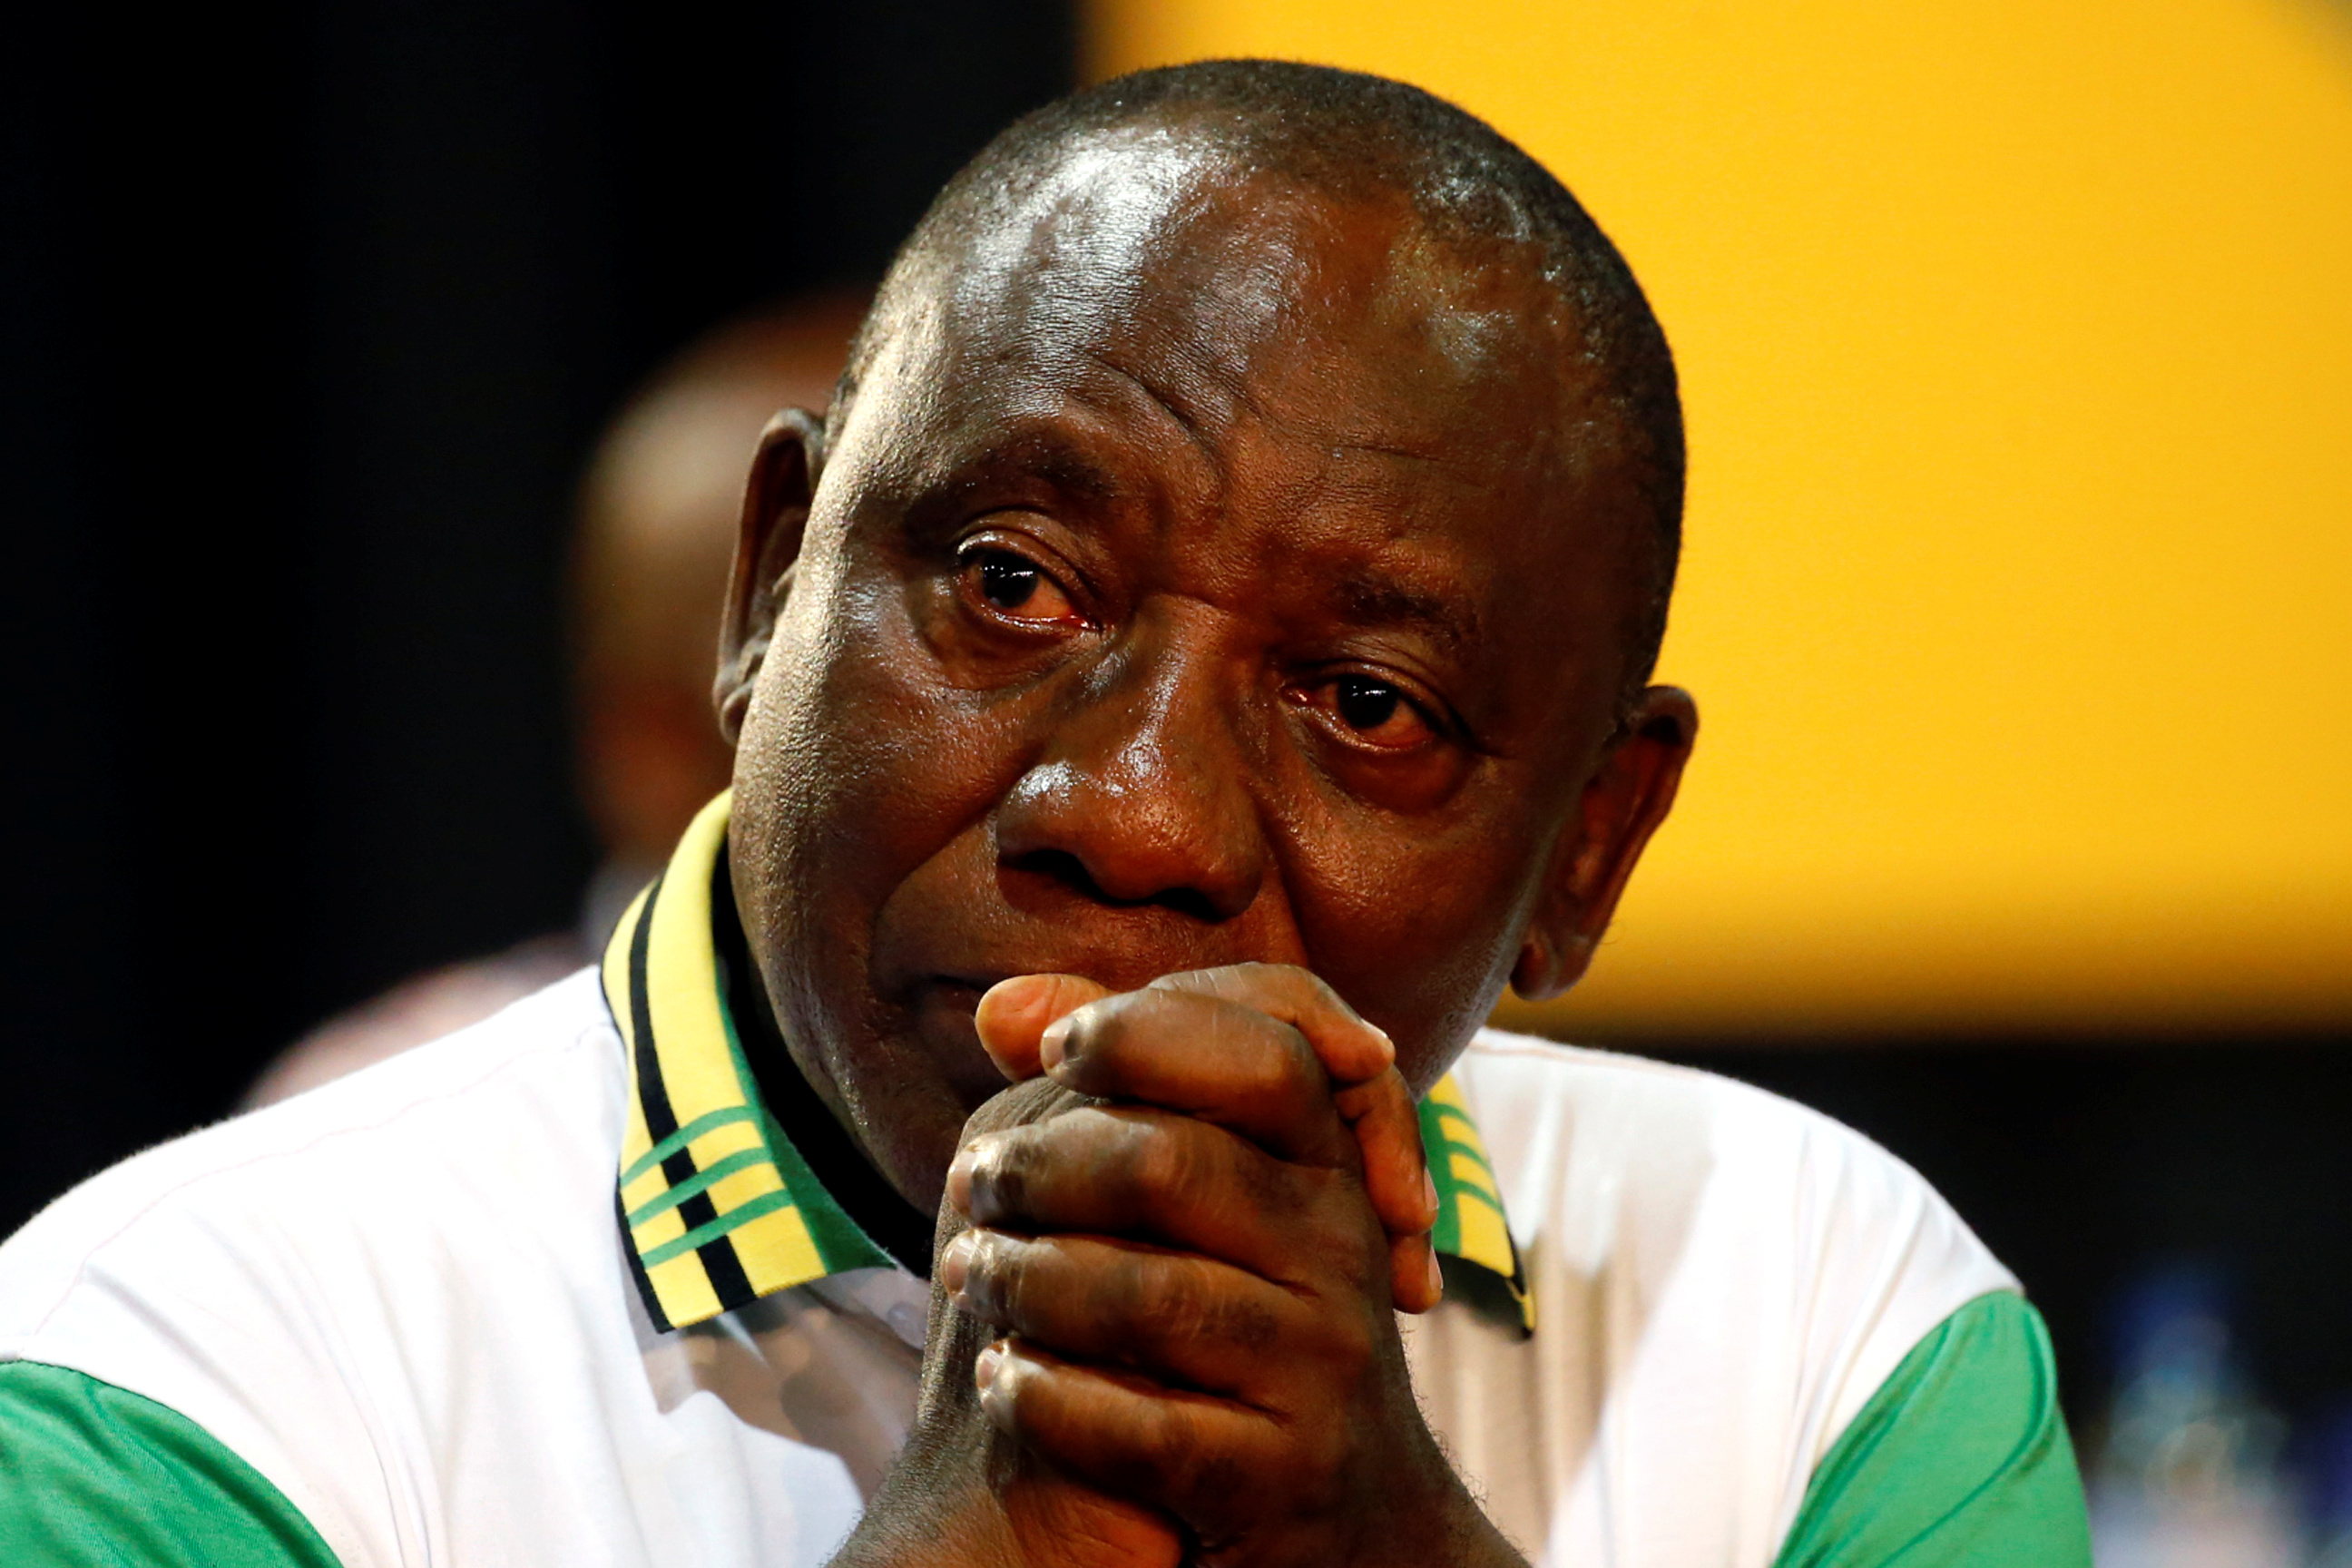 Deputy president of South Africa Cyril Ramaphosa reacts after he was elected president of the ANC during the 54th National Conference of the ruling African National Congress (ANC) at the Nasrec Expo Centre in Johannesburg, South Africa December 18, 2017. REUTERS/Siphiwe Sibeko - RC1289F77440